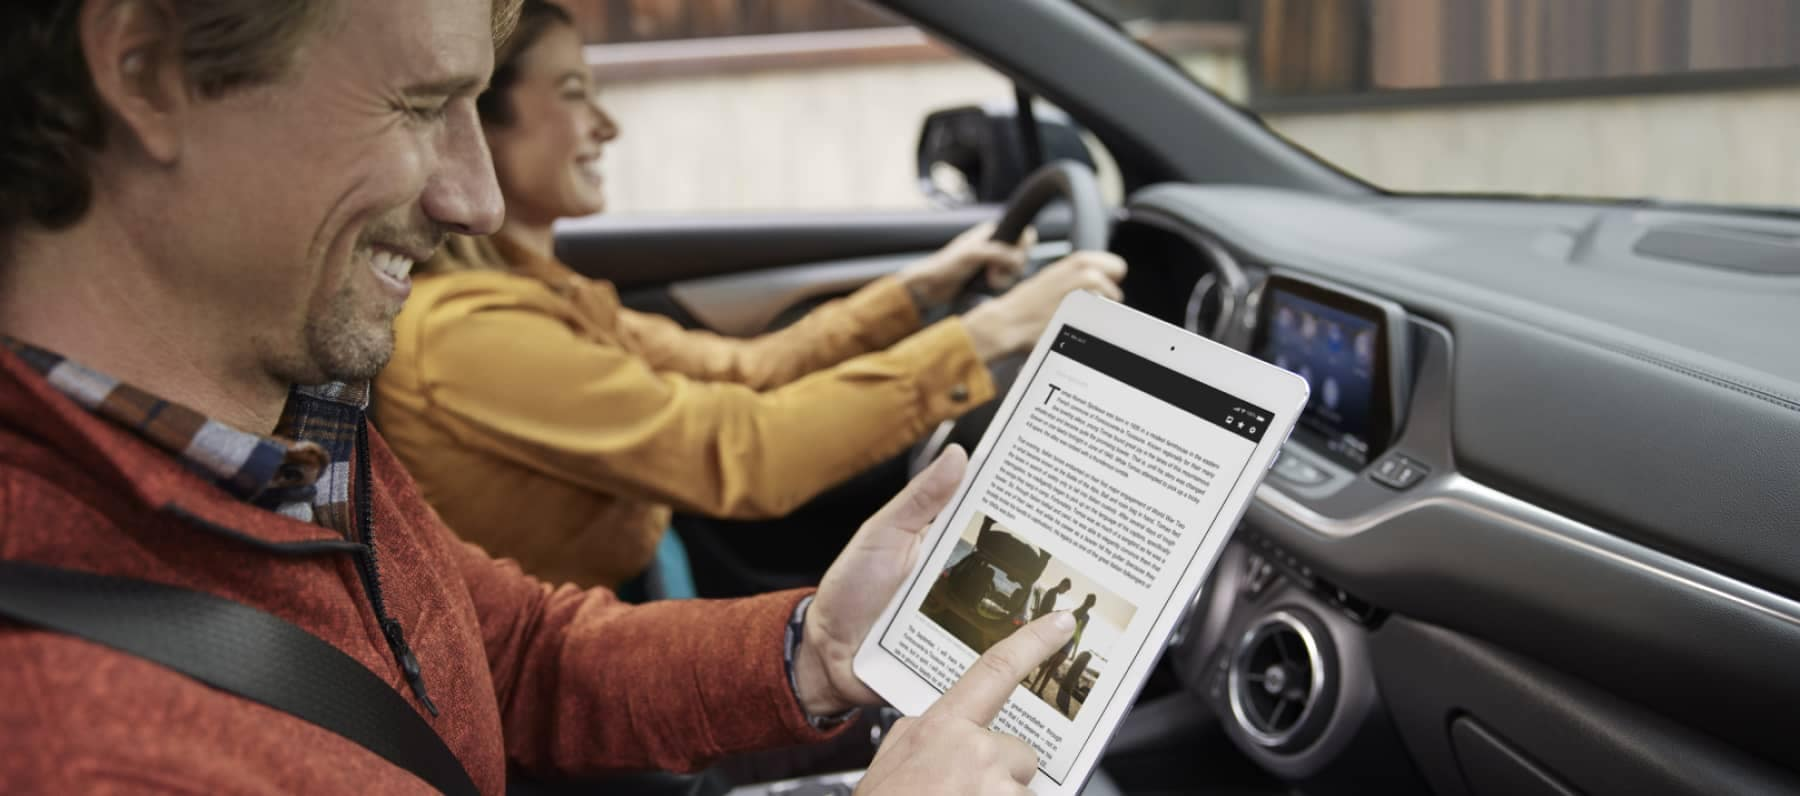 man is smiling while looking at a tablet in the passenger seat of car